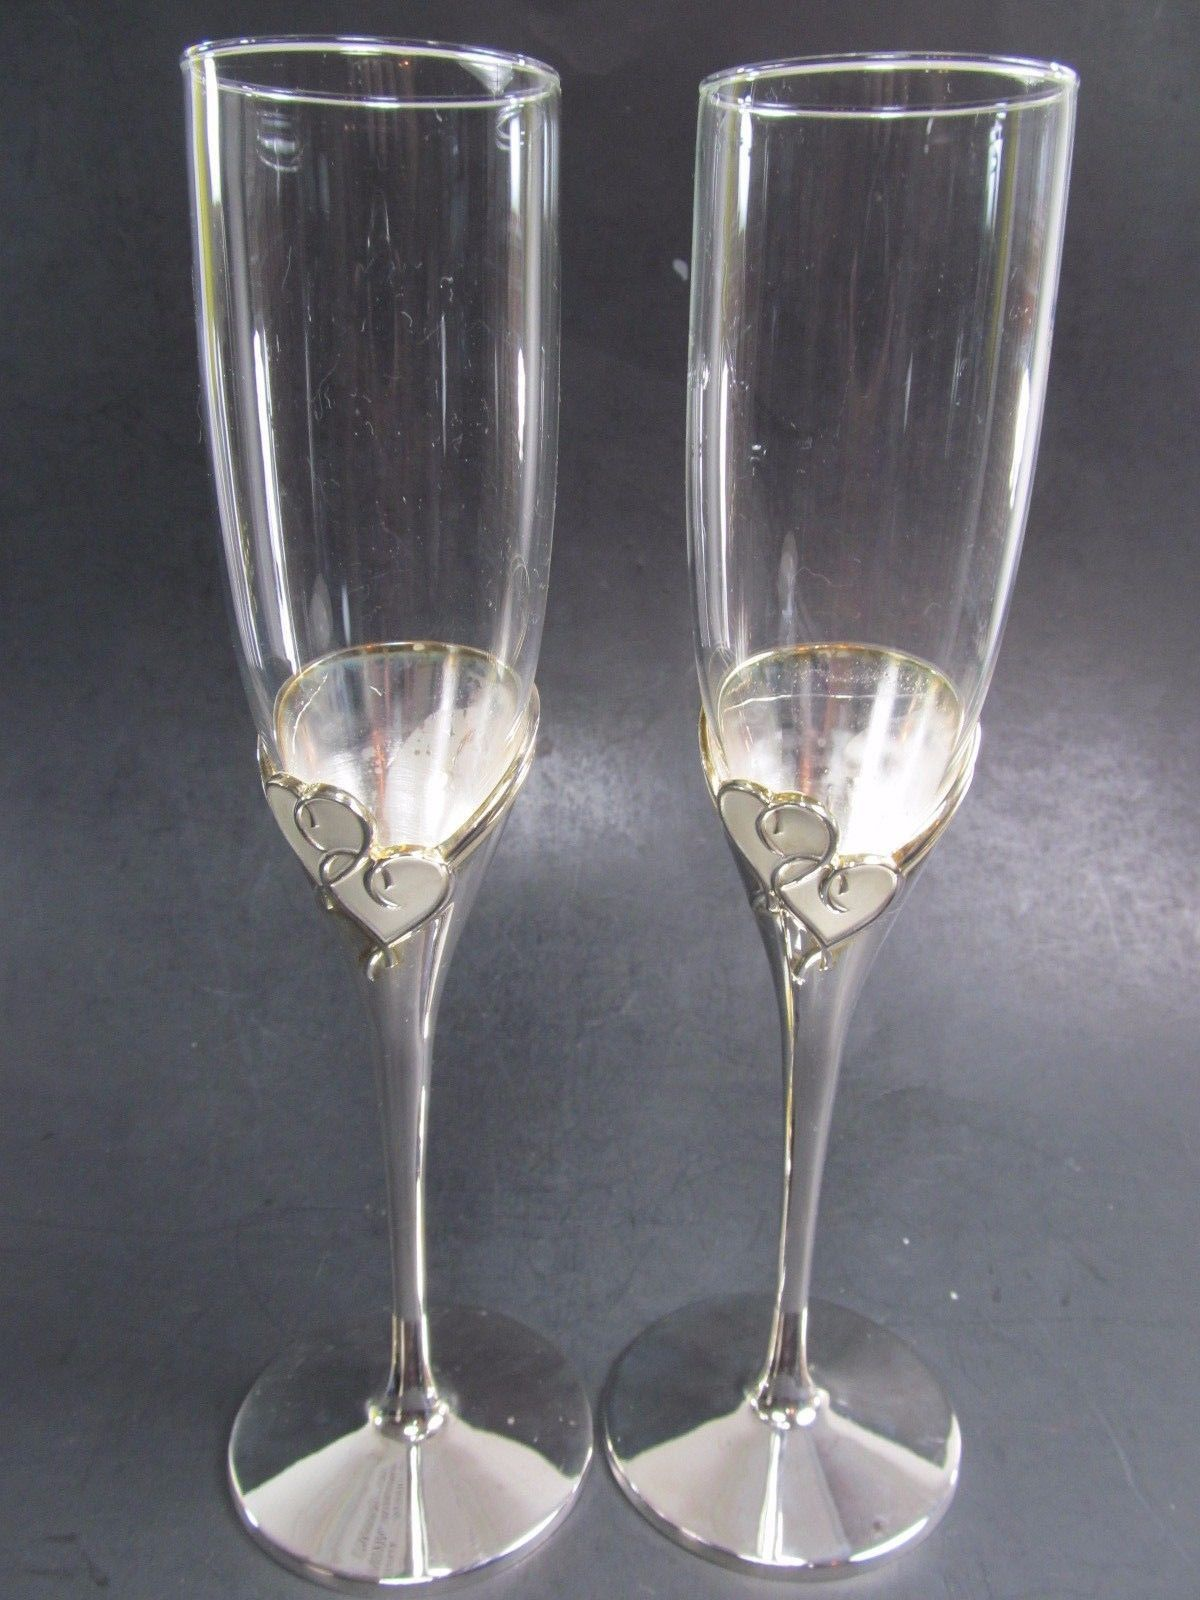 2 LENOX FOREVERMORE Crystal Silverplate Heart Wedding Toasting Champagne Flutes